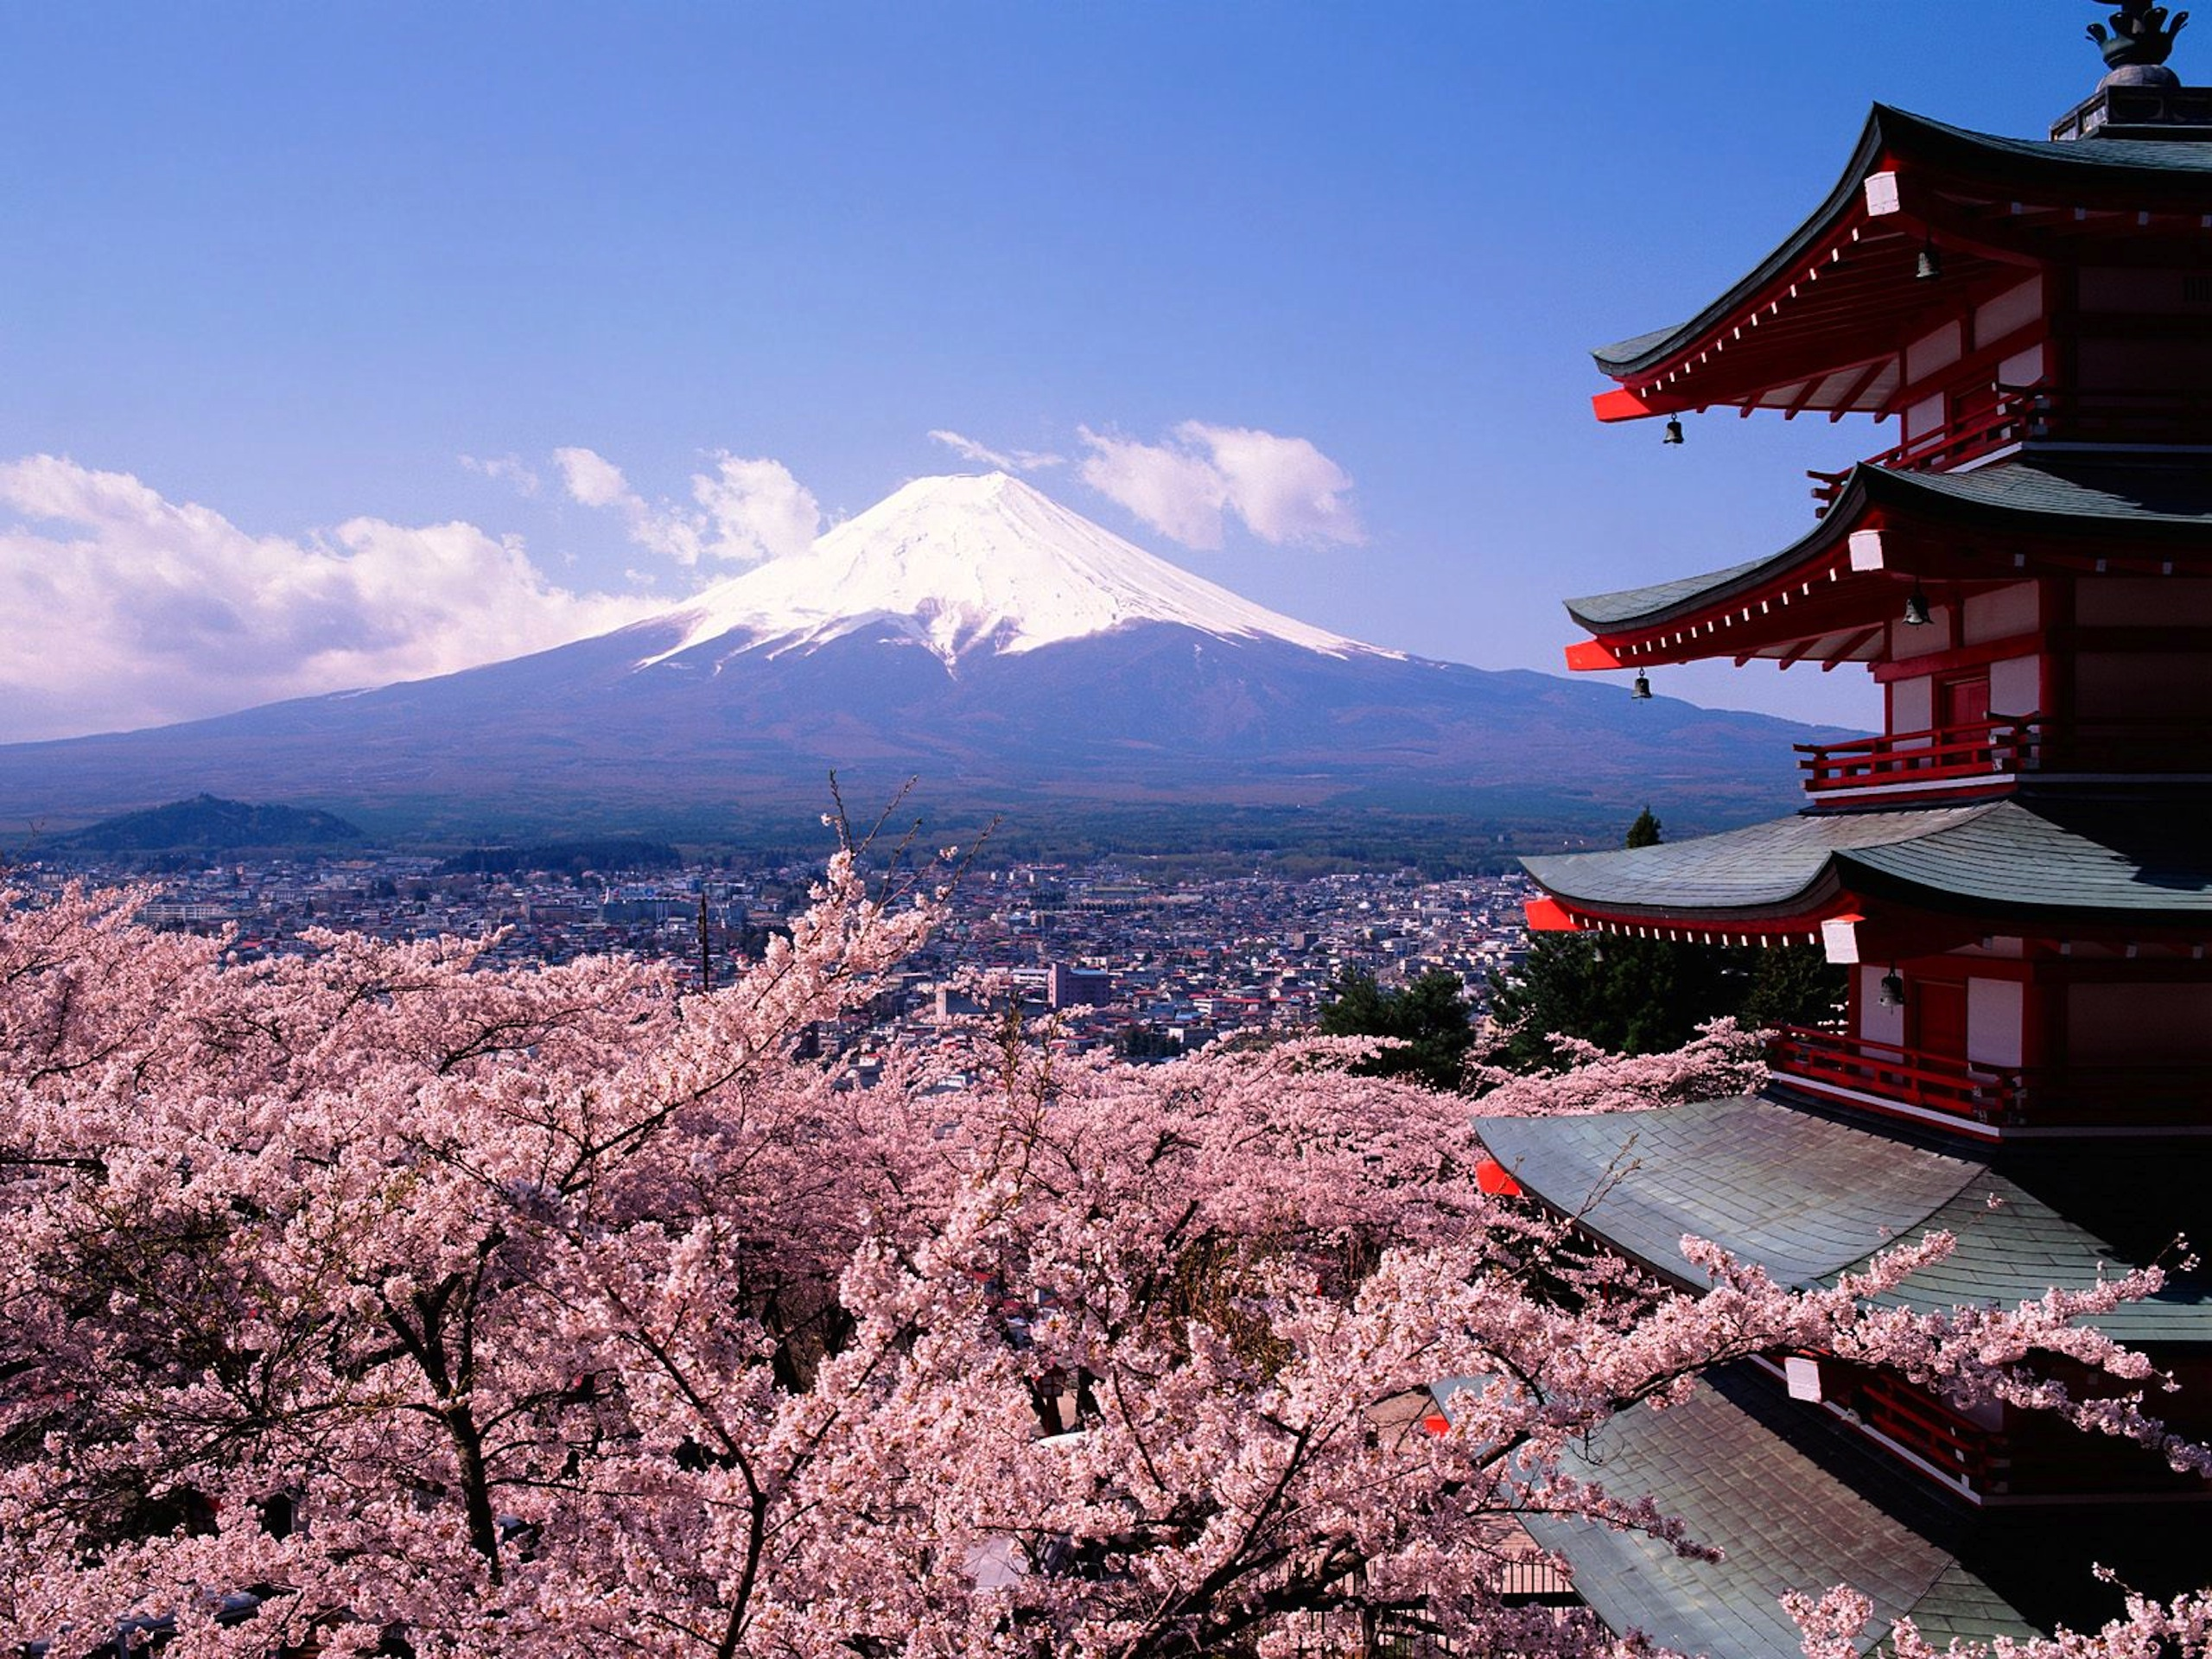 Mount Fuji Japan Wallpaper Gallery Yopriceville   High Quality 2560x1920